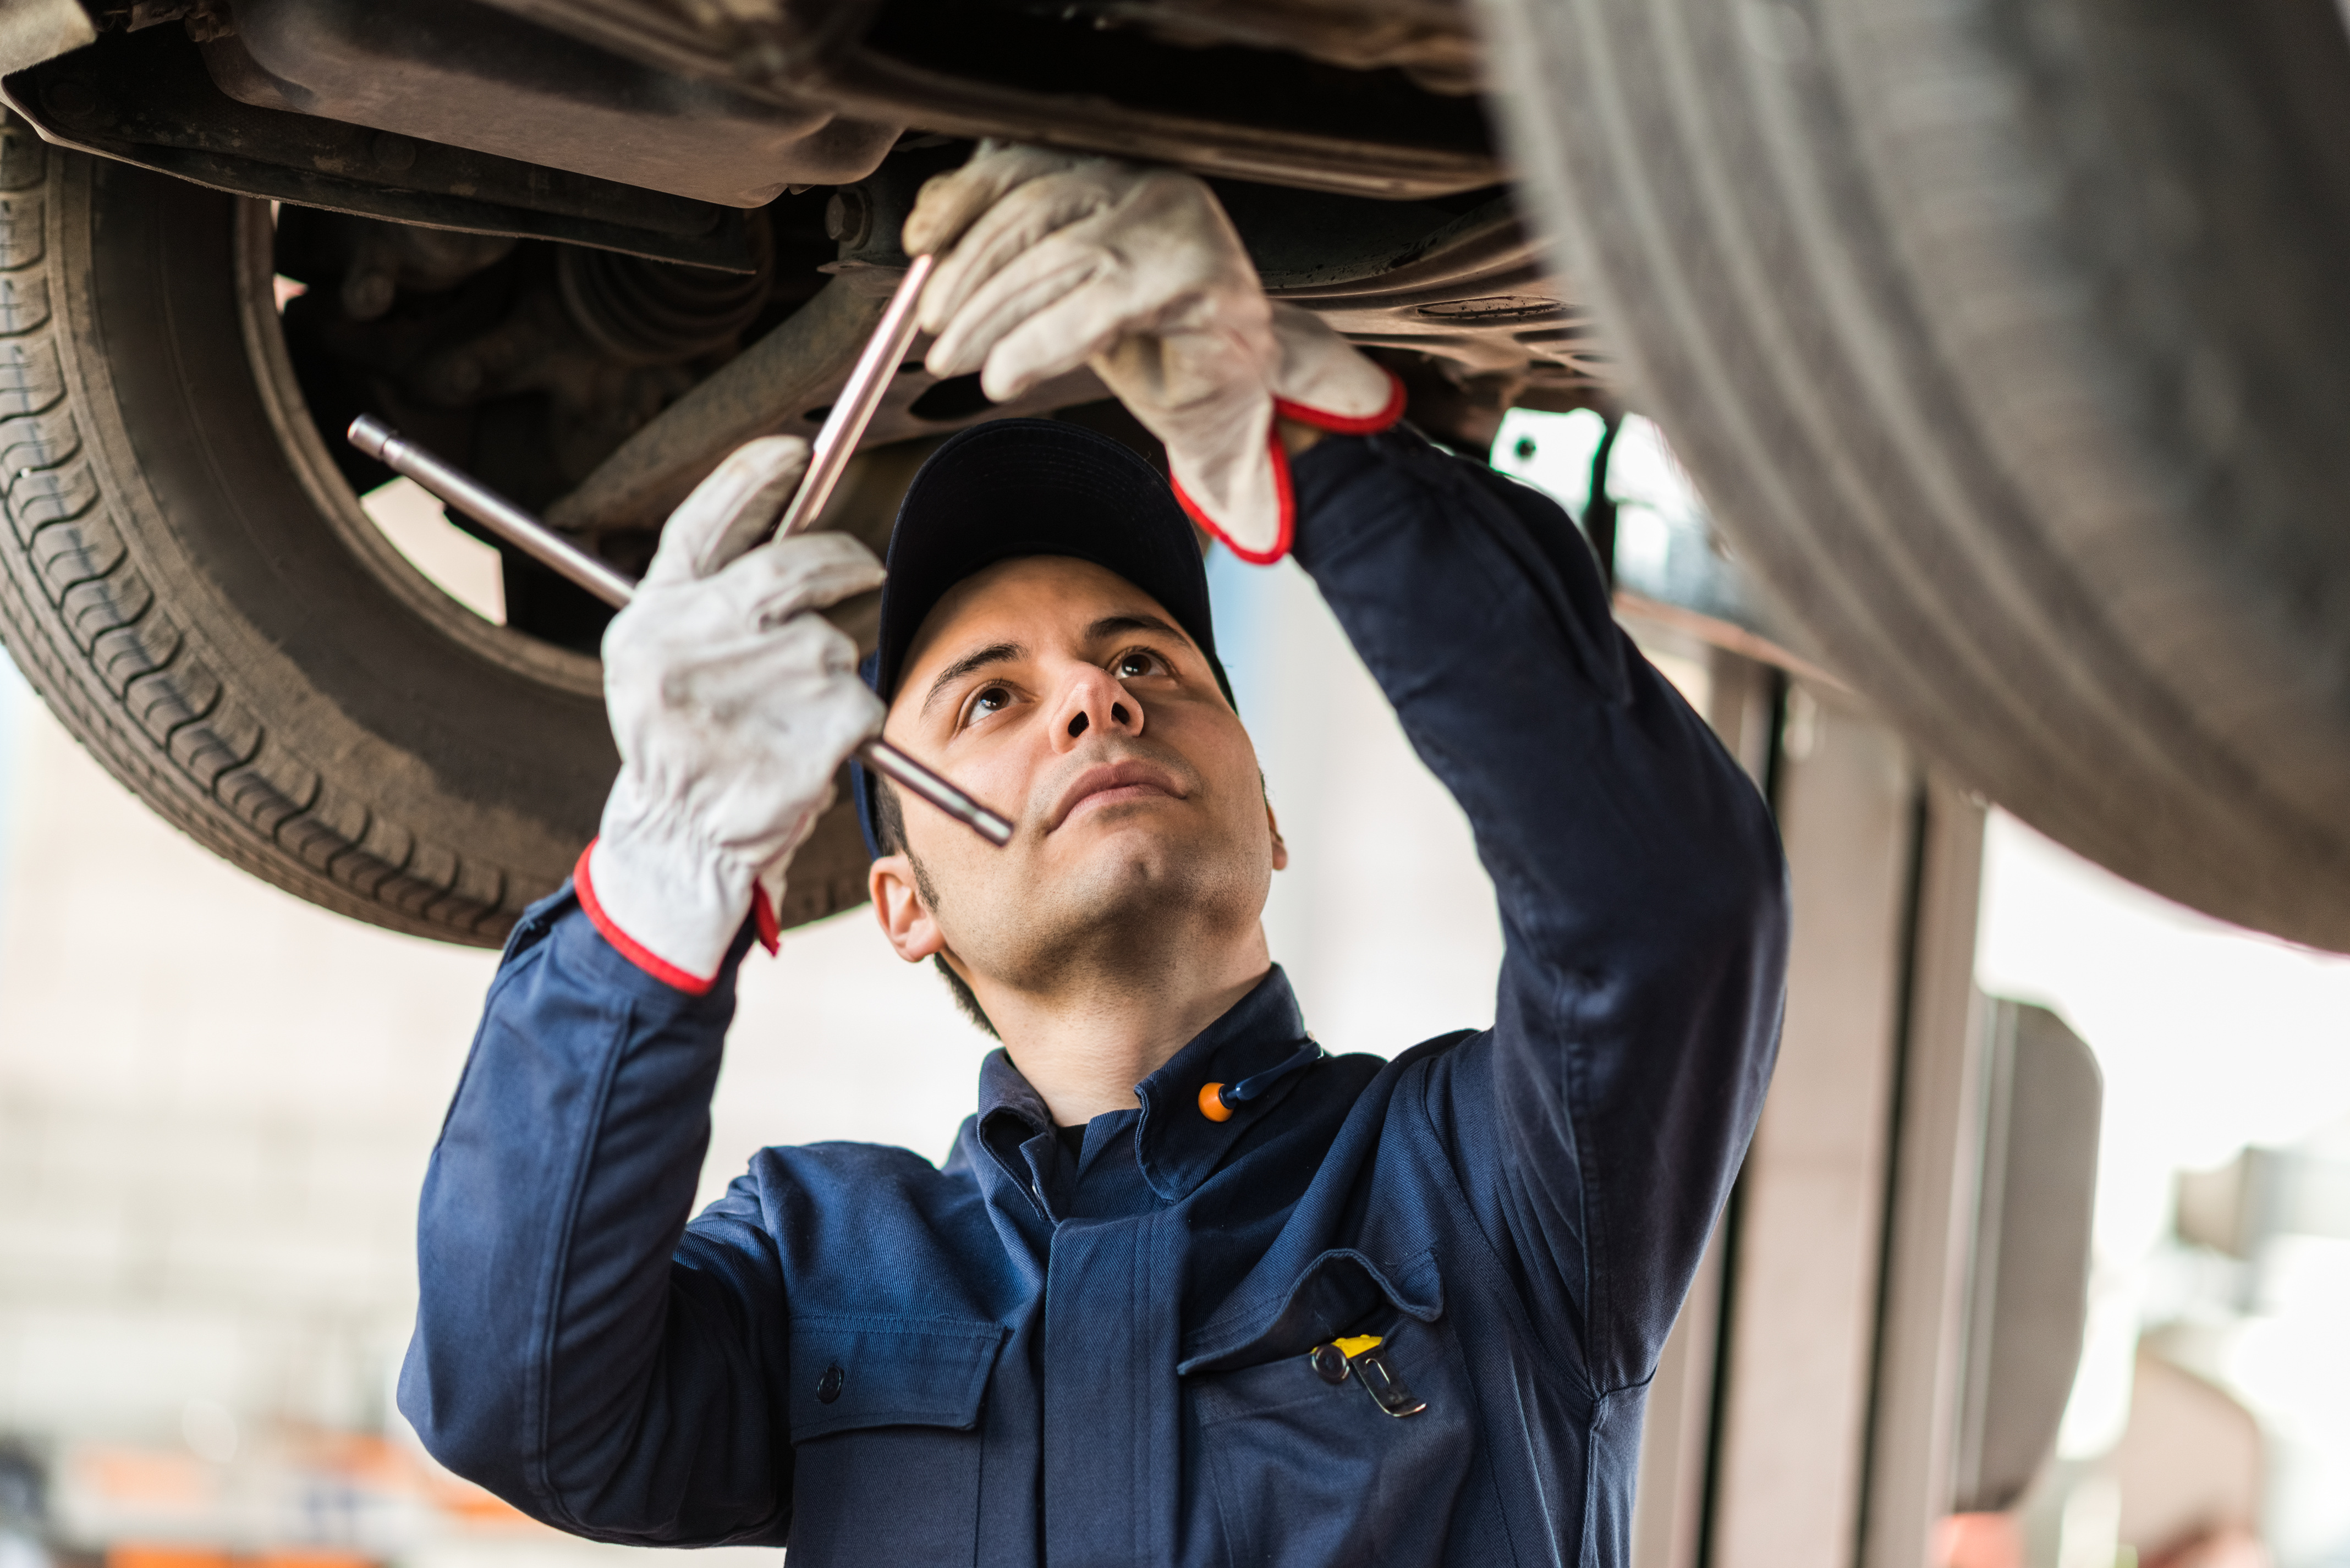 Finding and Trusting Your Automotive Mechanic on avanteinsurance.com